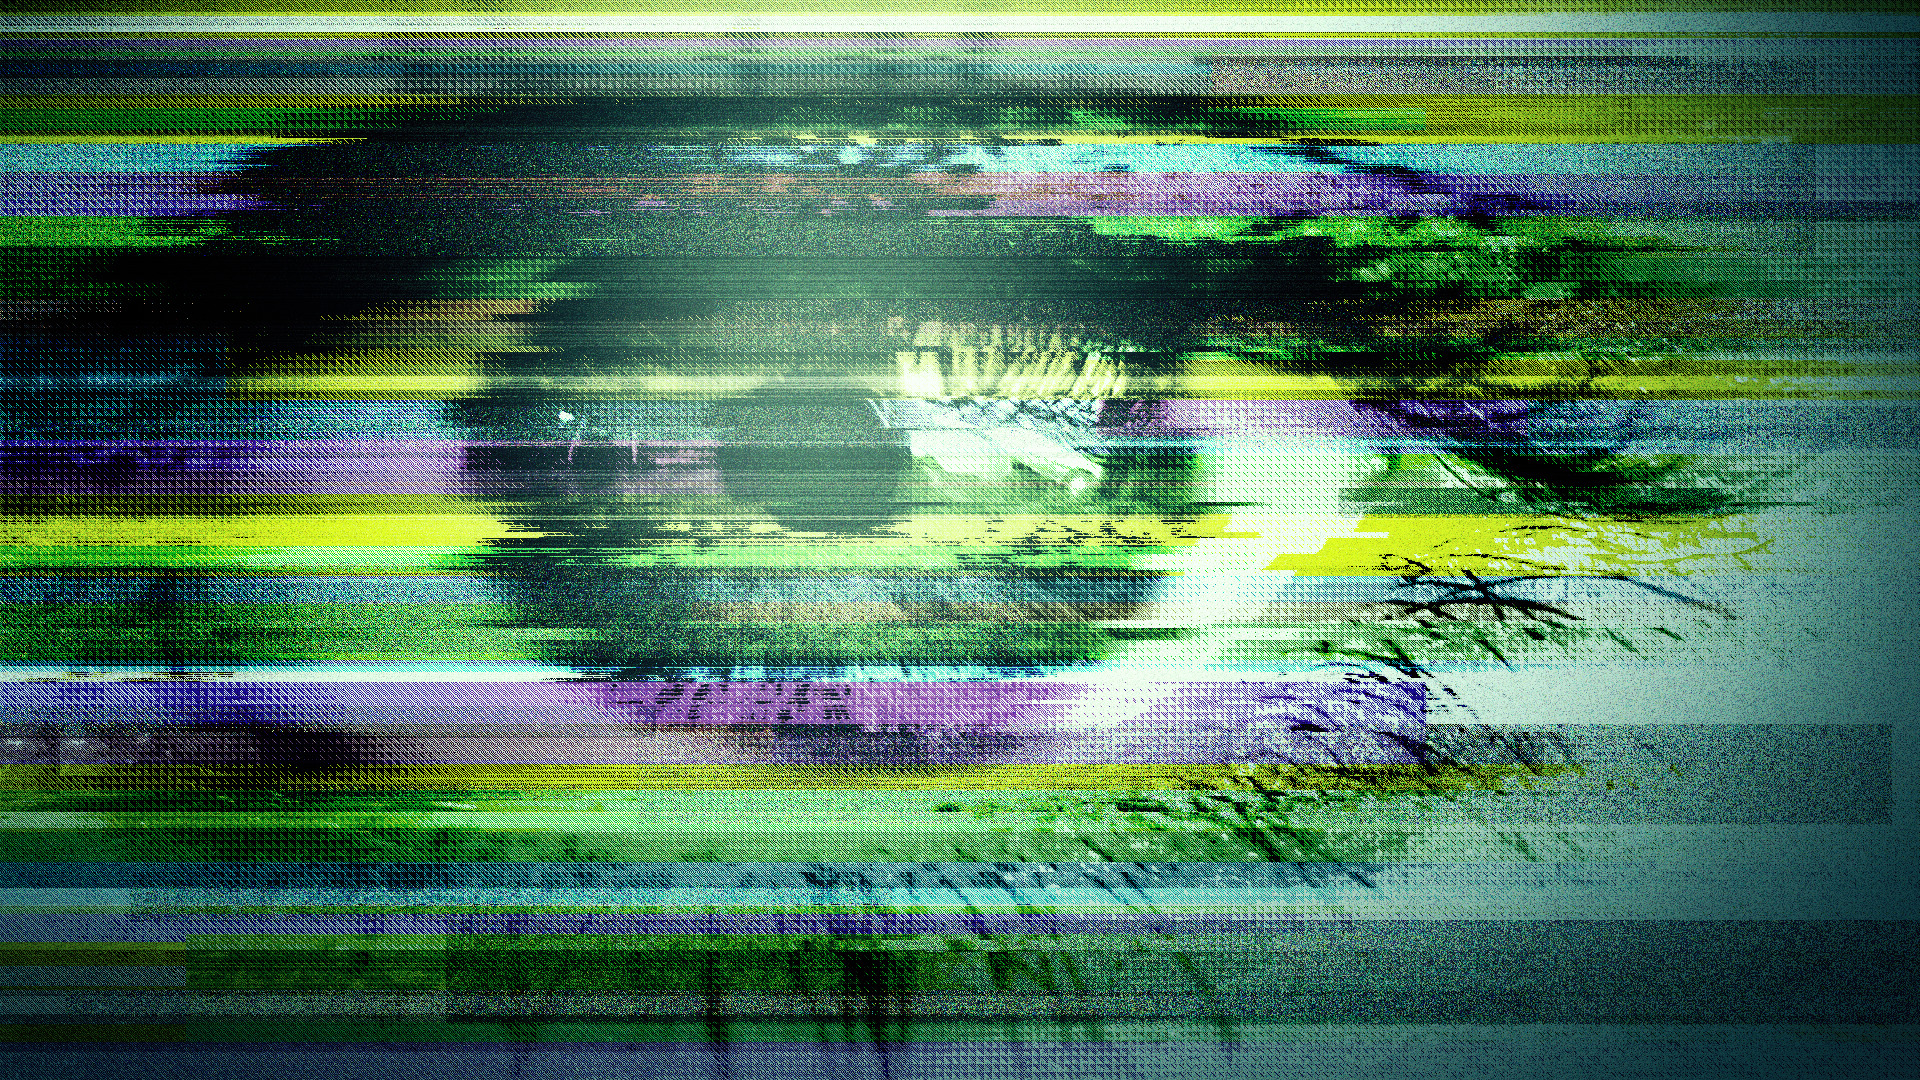 14217-eyes-anime-glitch_art-digital_artjpg